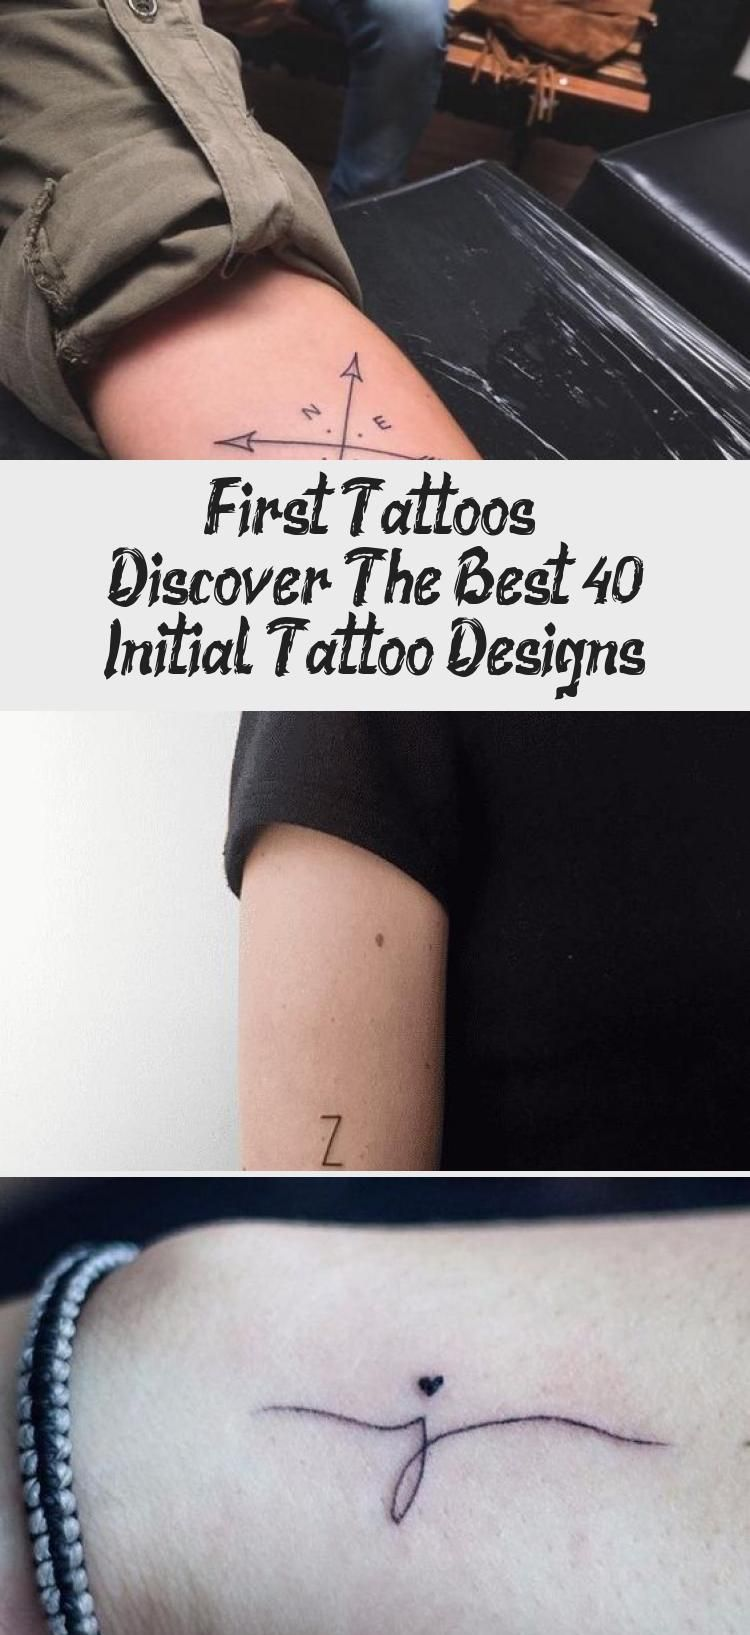 First tattoos - Discover the best 40+ Initial Tattoo